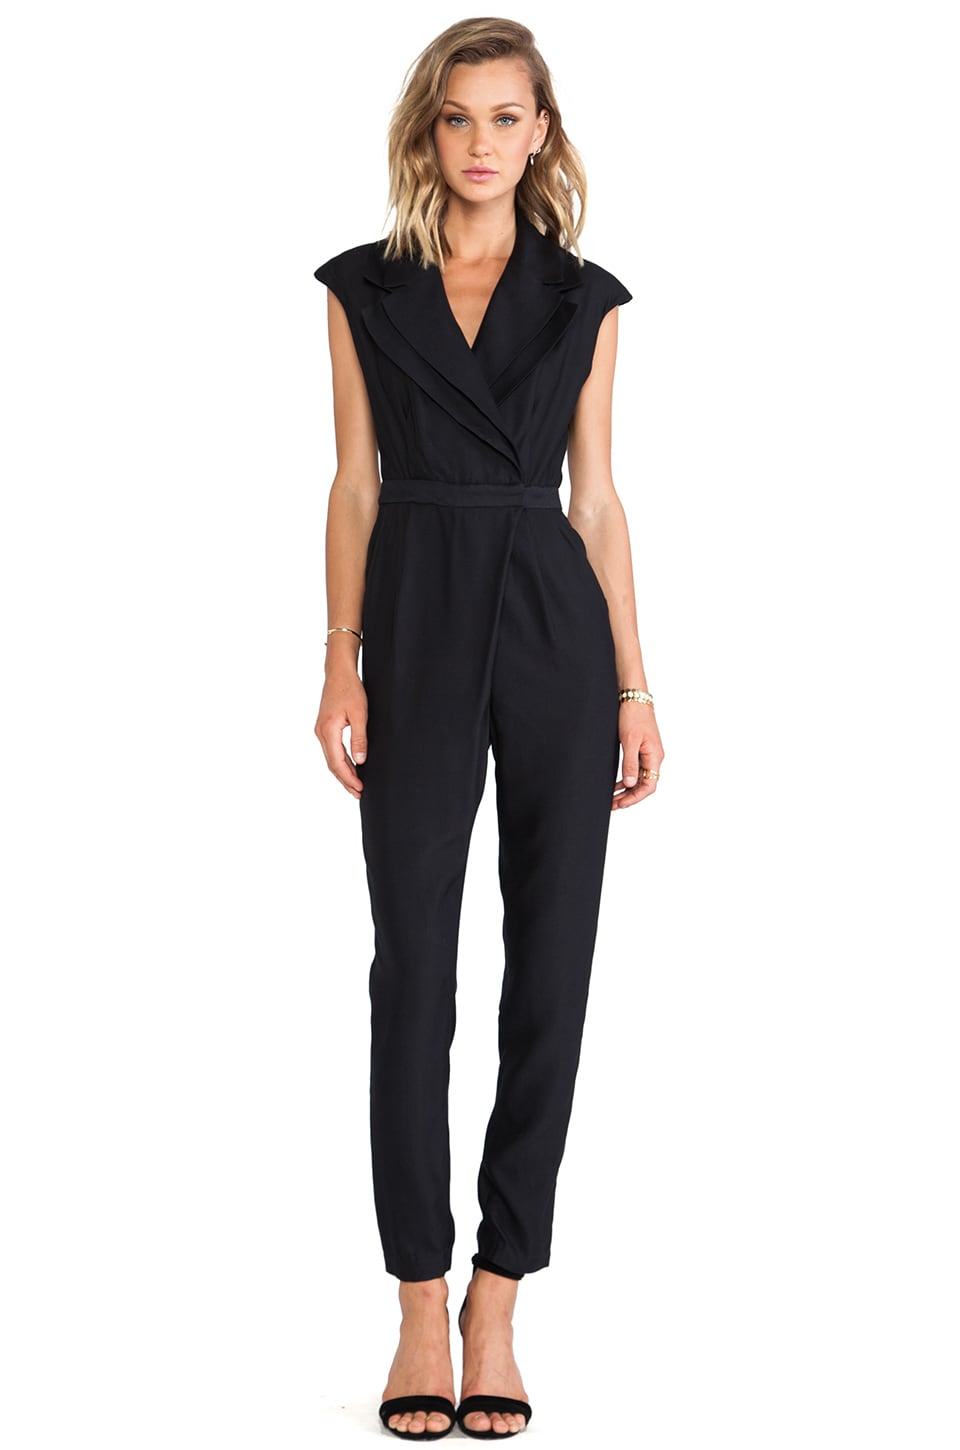 C/MEO Star Eyes Pantsuit in Black